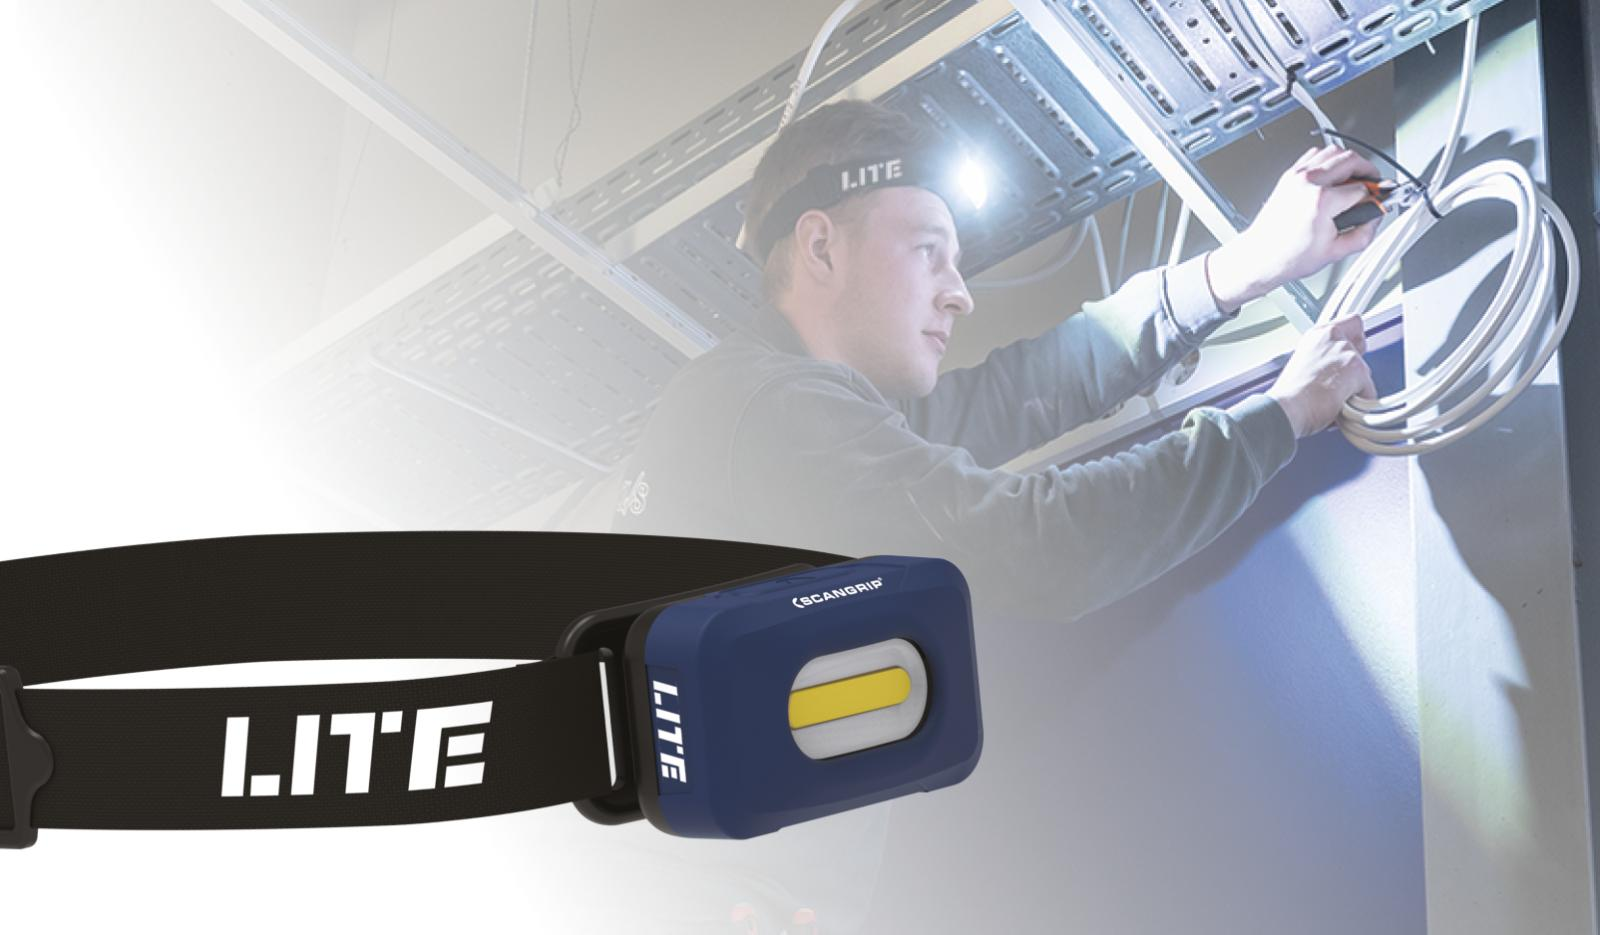 Introducing HEAD LITE S – a basic headlamp at an extremely attractive price